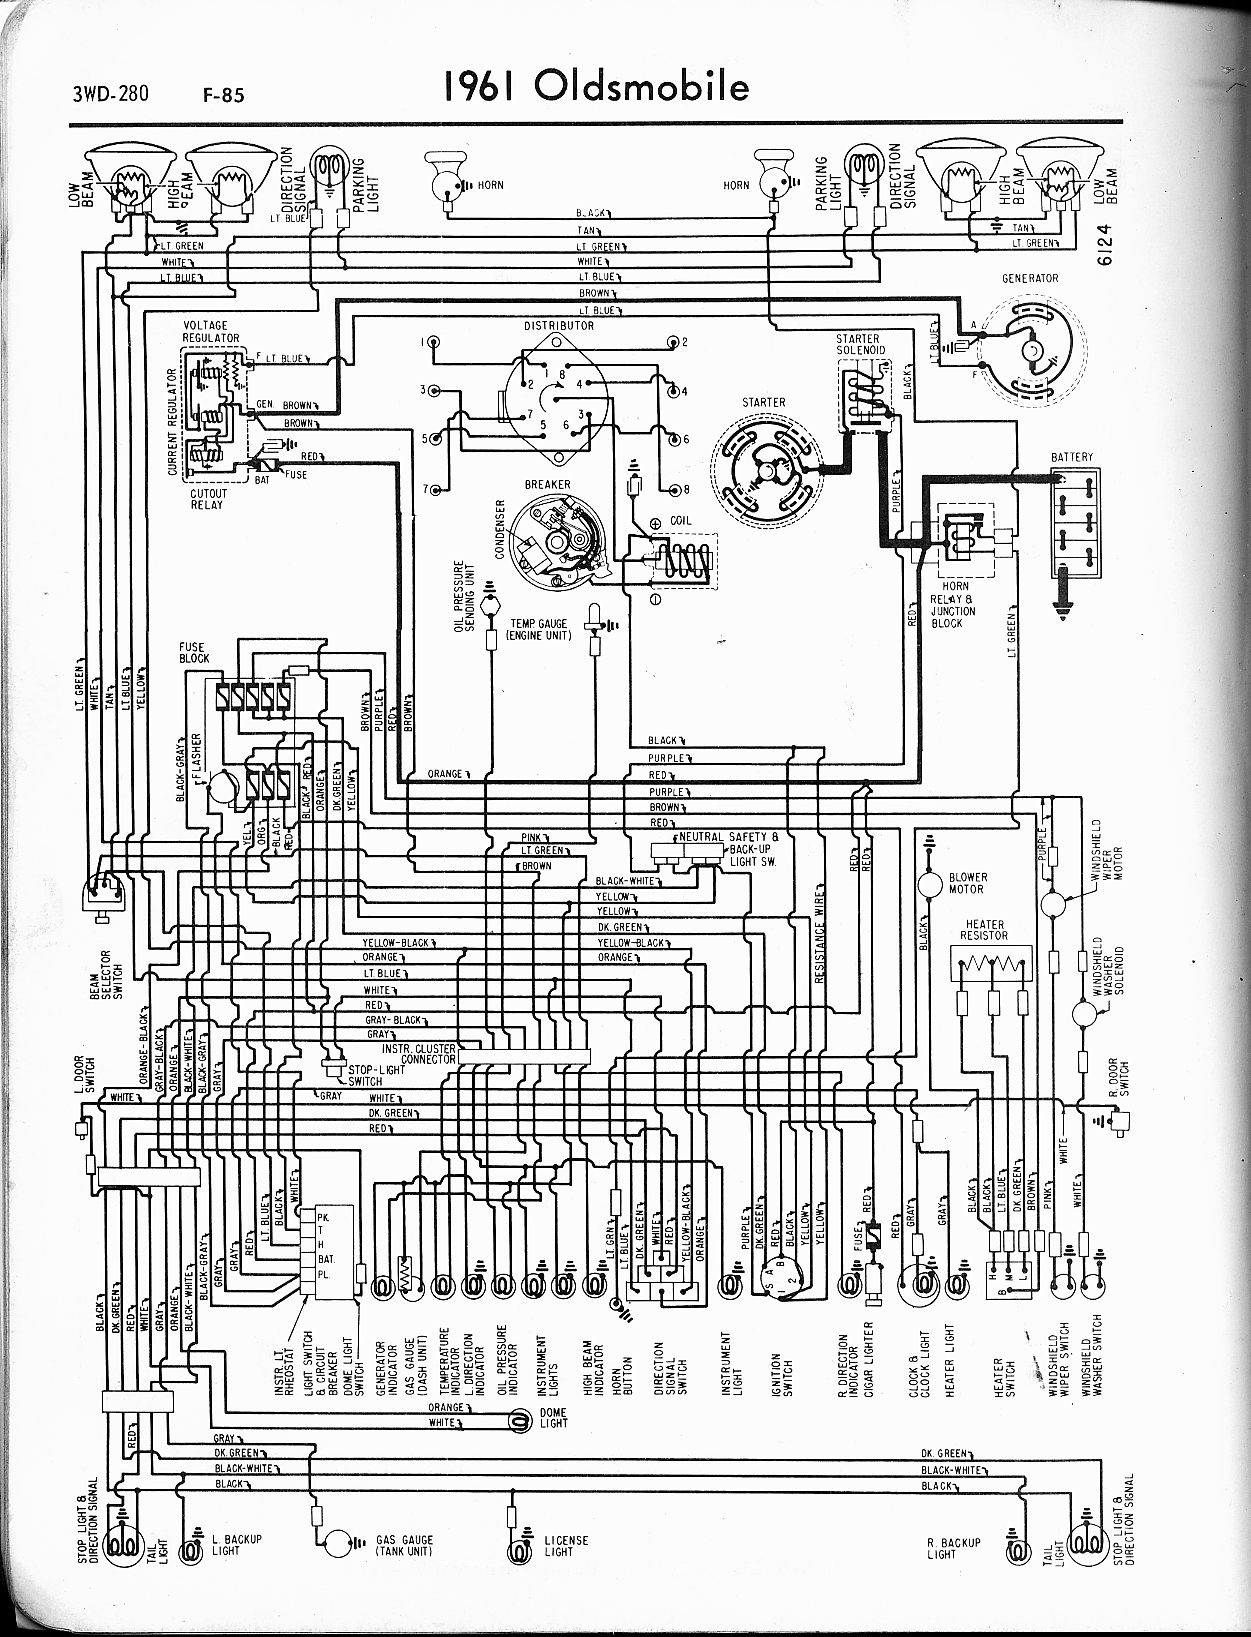 1986 oldsmobile 3 8 engine diagram schematic wiring diagramwiring diagram for 1986 cutlass wiring diagram oldsmobile intrigue engine diagram 1986 oldsmobile 3 8 engine diagram